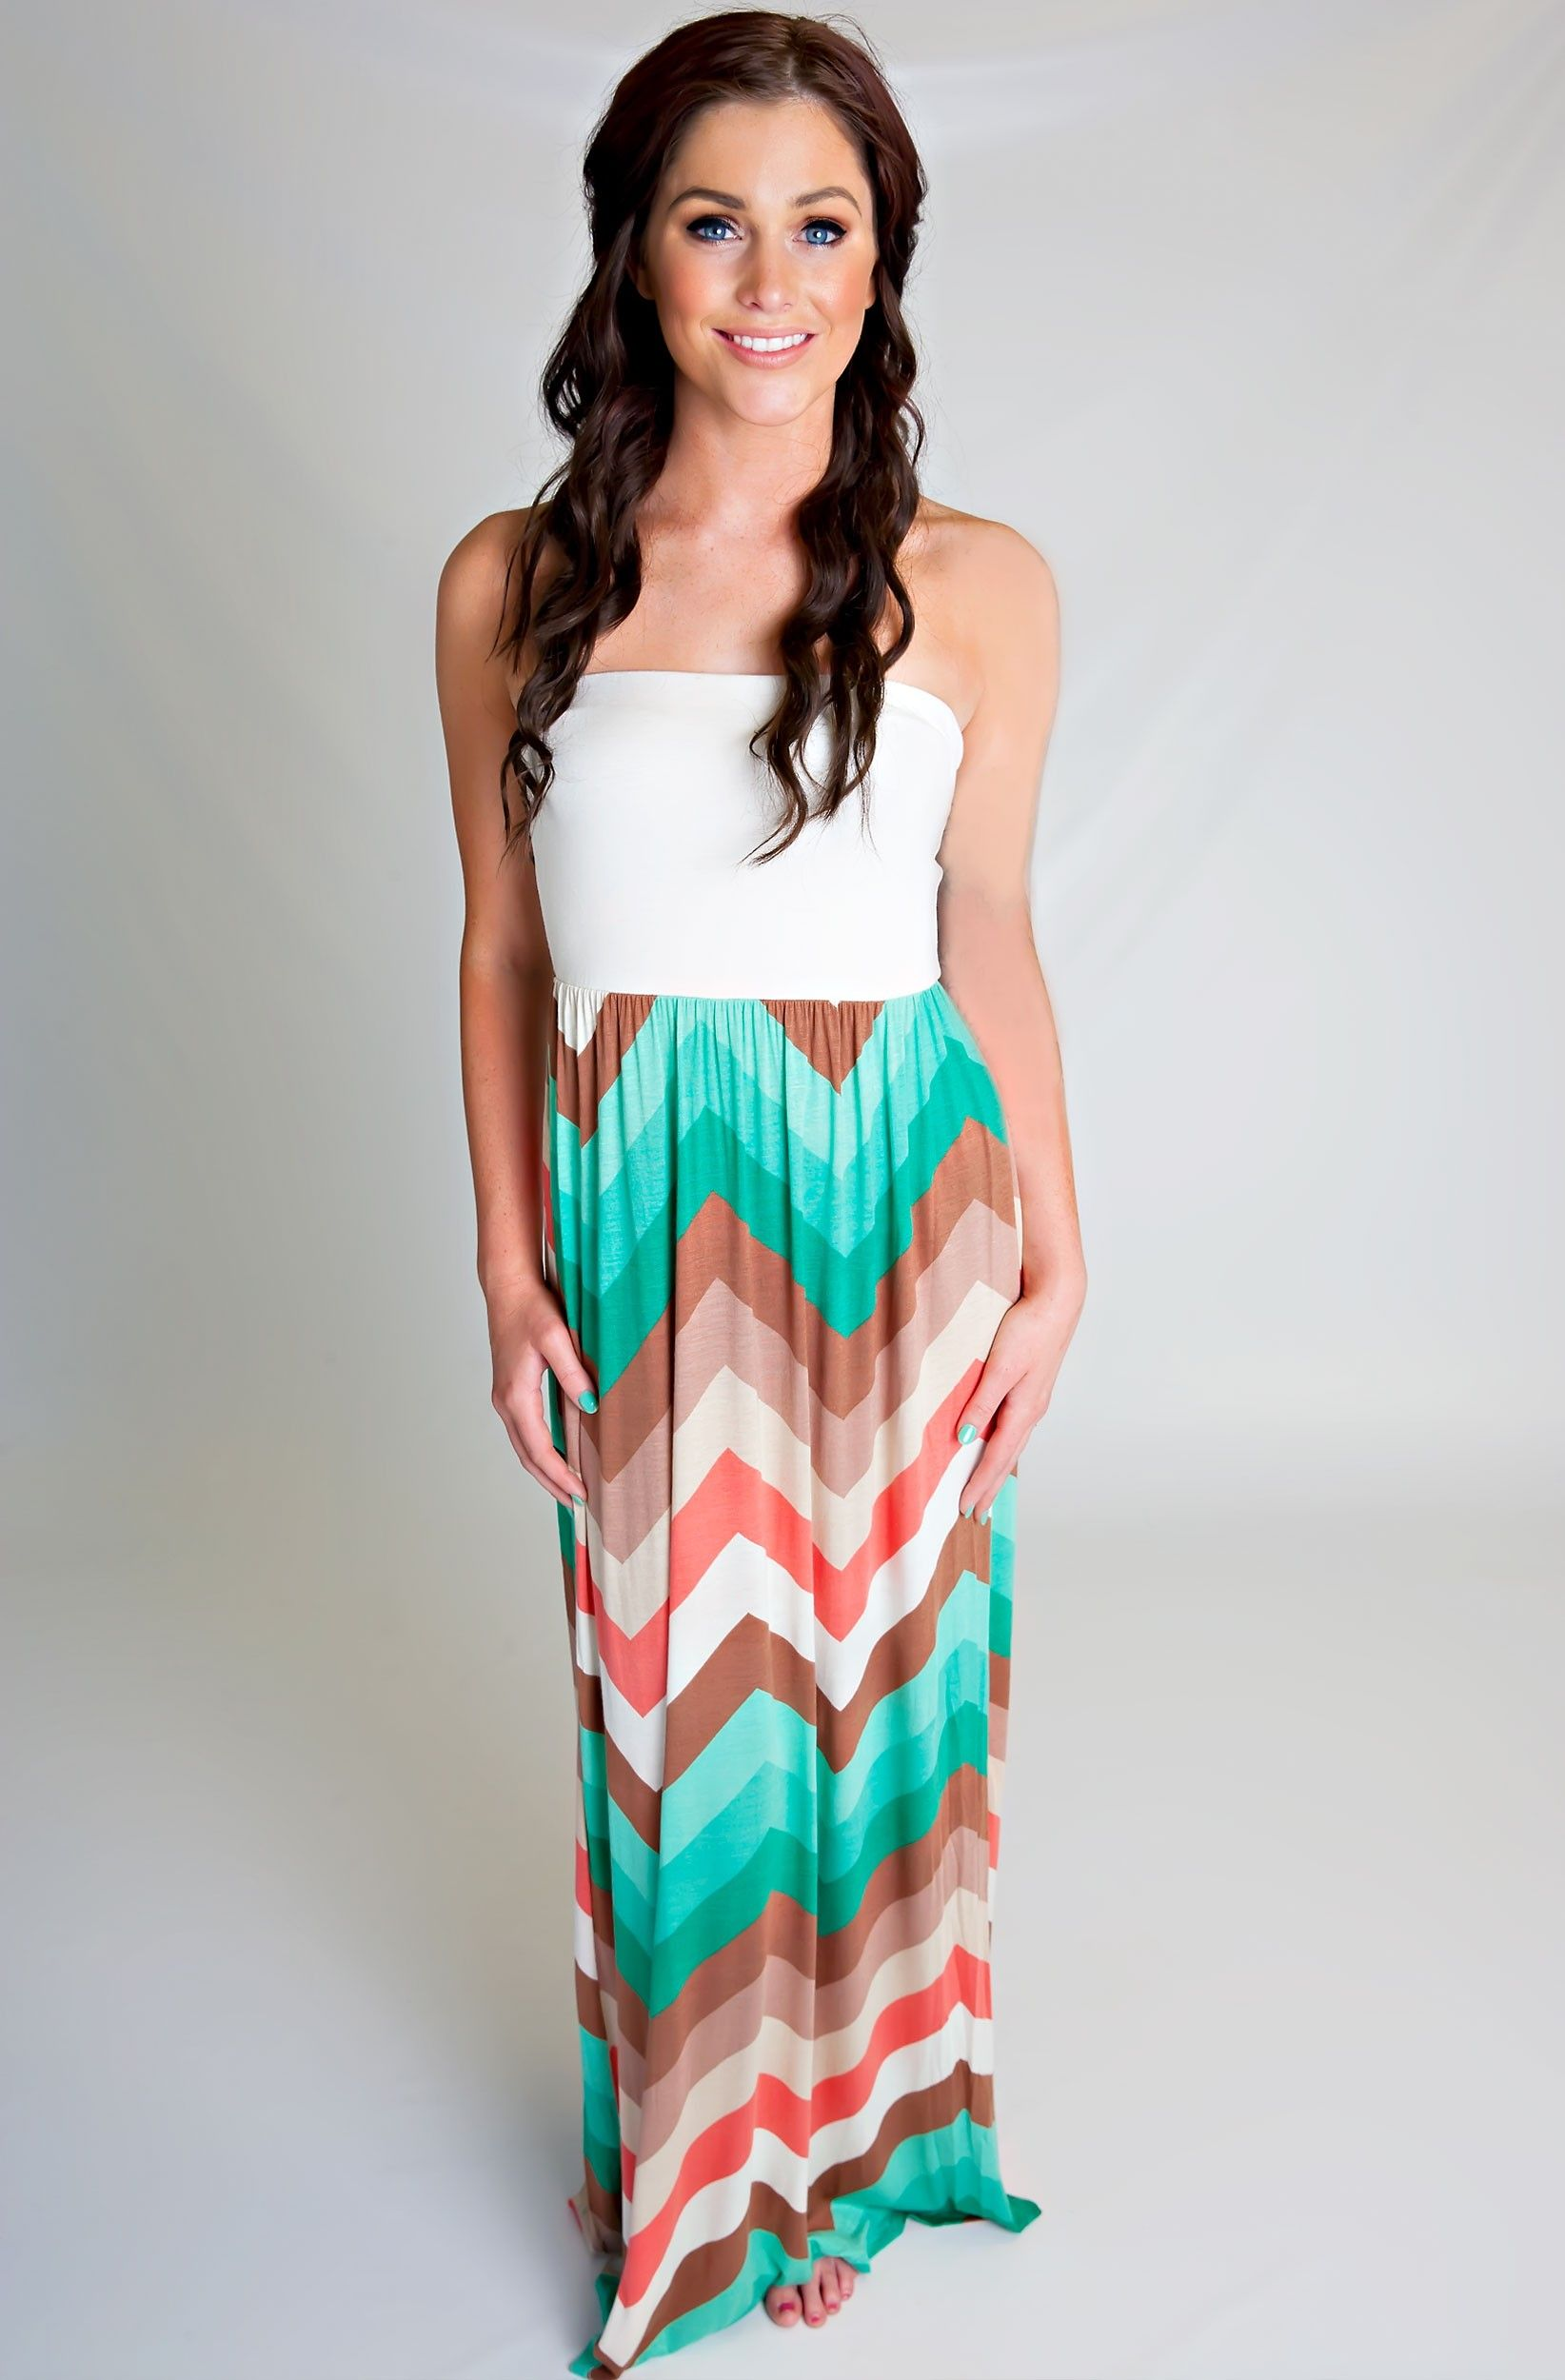 The Caribbean Zigzag Maxi Dress These Are My Favorite Colors Together